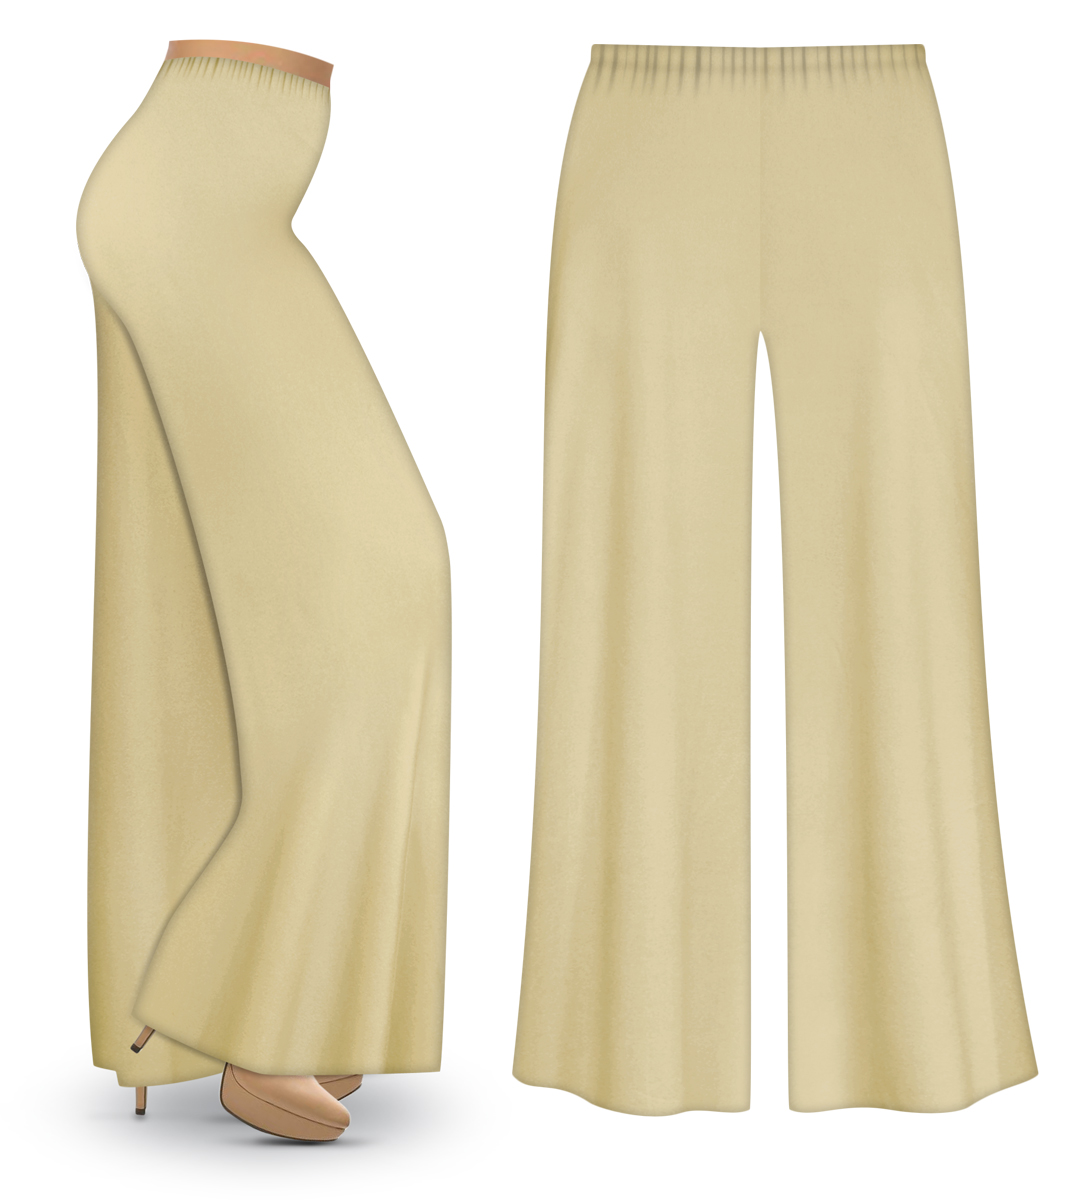 Clearance Tan Or Cream Wide Leg Palazzo Pants In Slinky